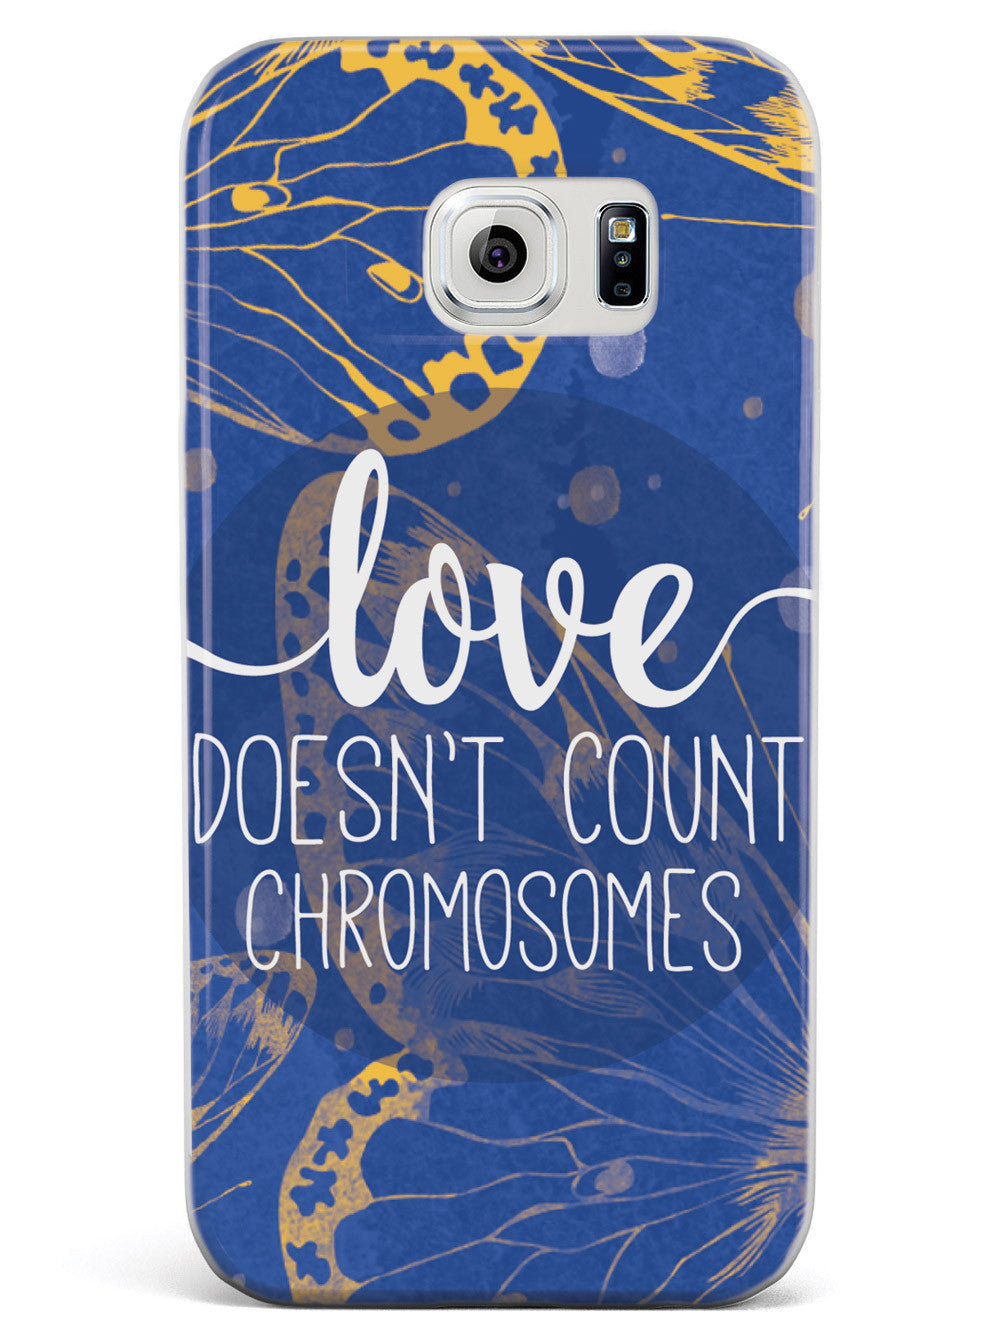 Love Doesn't Count Chromosomes Case